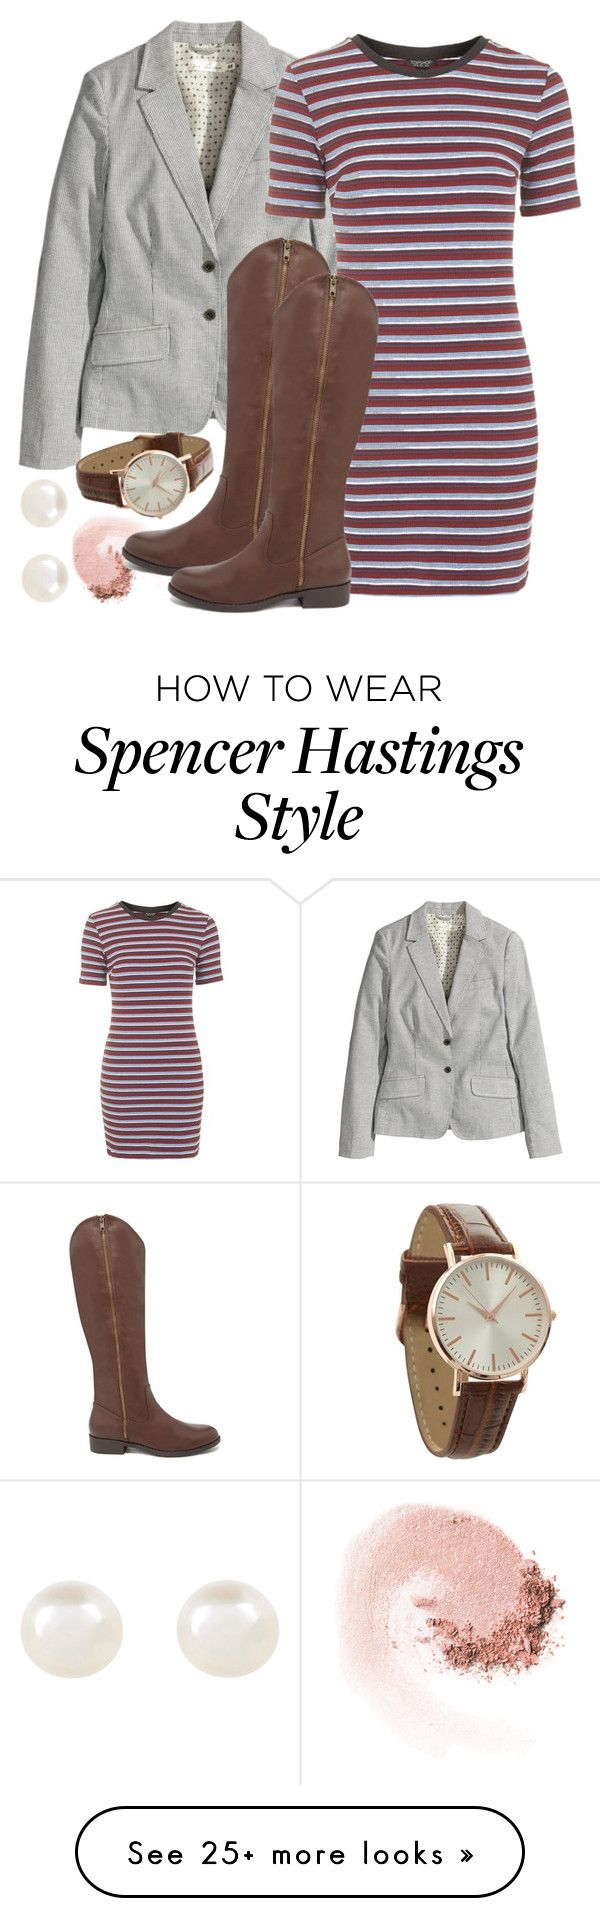 """""""Spencer Hastings inspired outfit"""" by liarsstyle on Polyvore featuring NARS Cosmetics, H&M, Topshop, Forever 21, Accessorize, school, college, old and mid"""